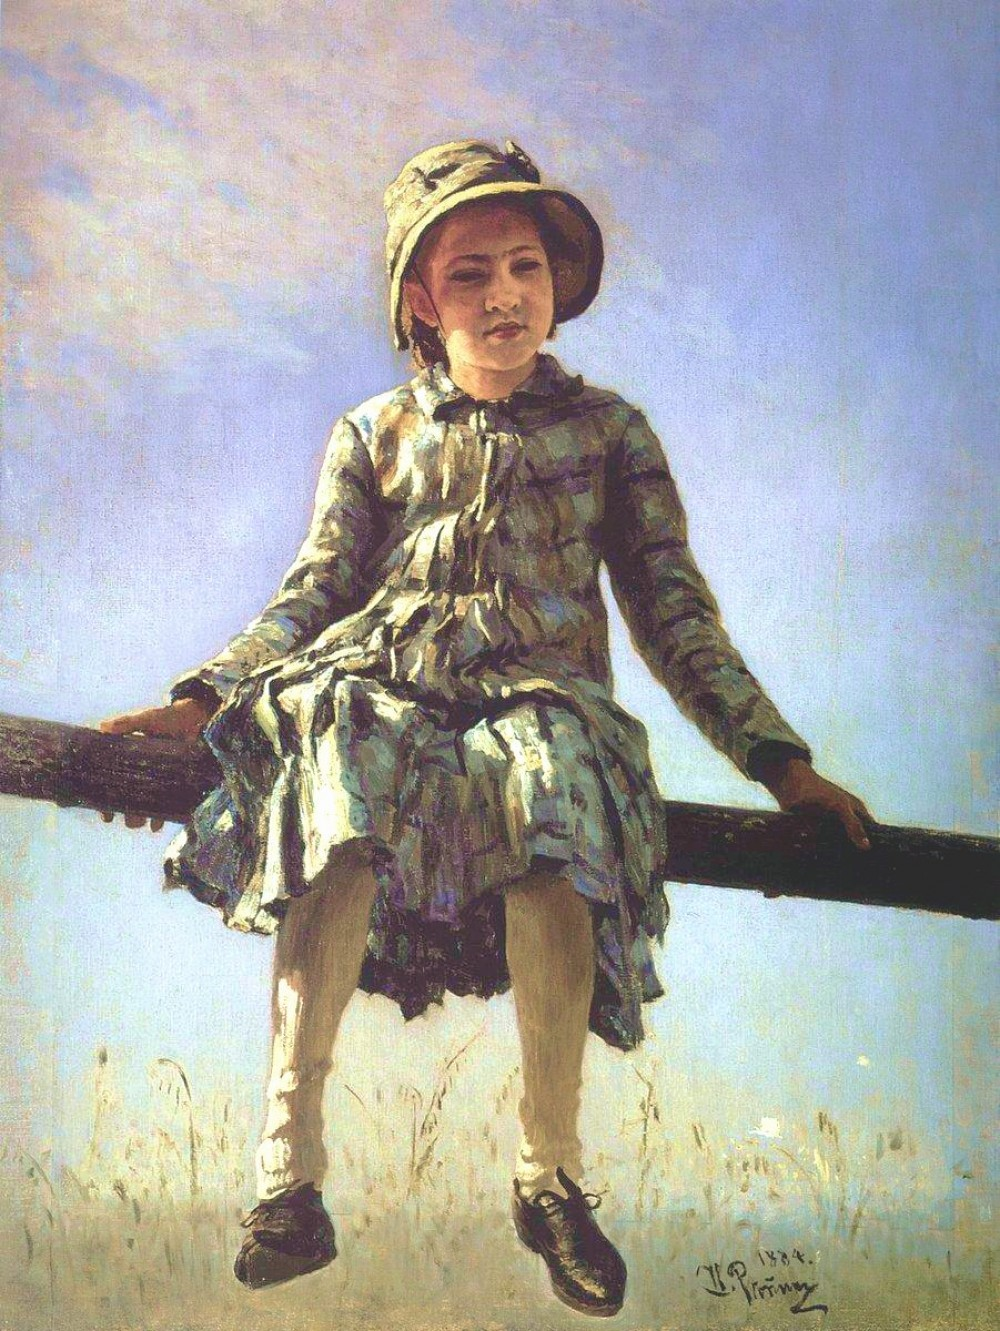 2-ilya-repin-grasshopper-portrait-of-nadezhda-repina-the-artists-daughter-1884